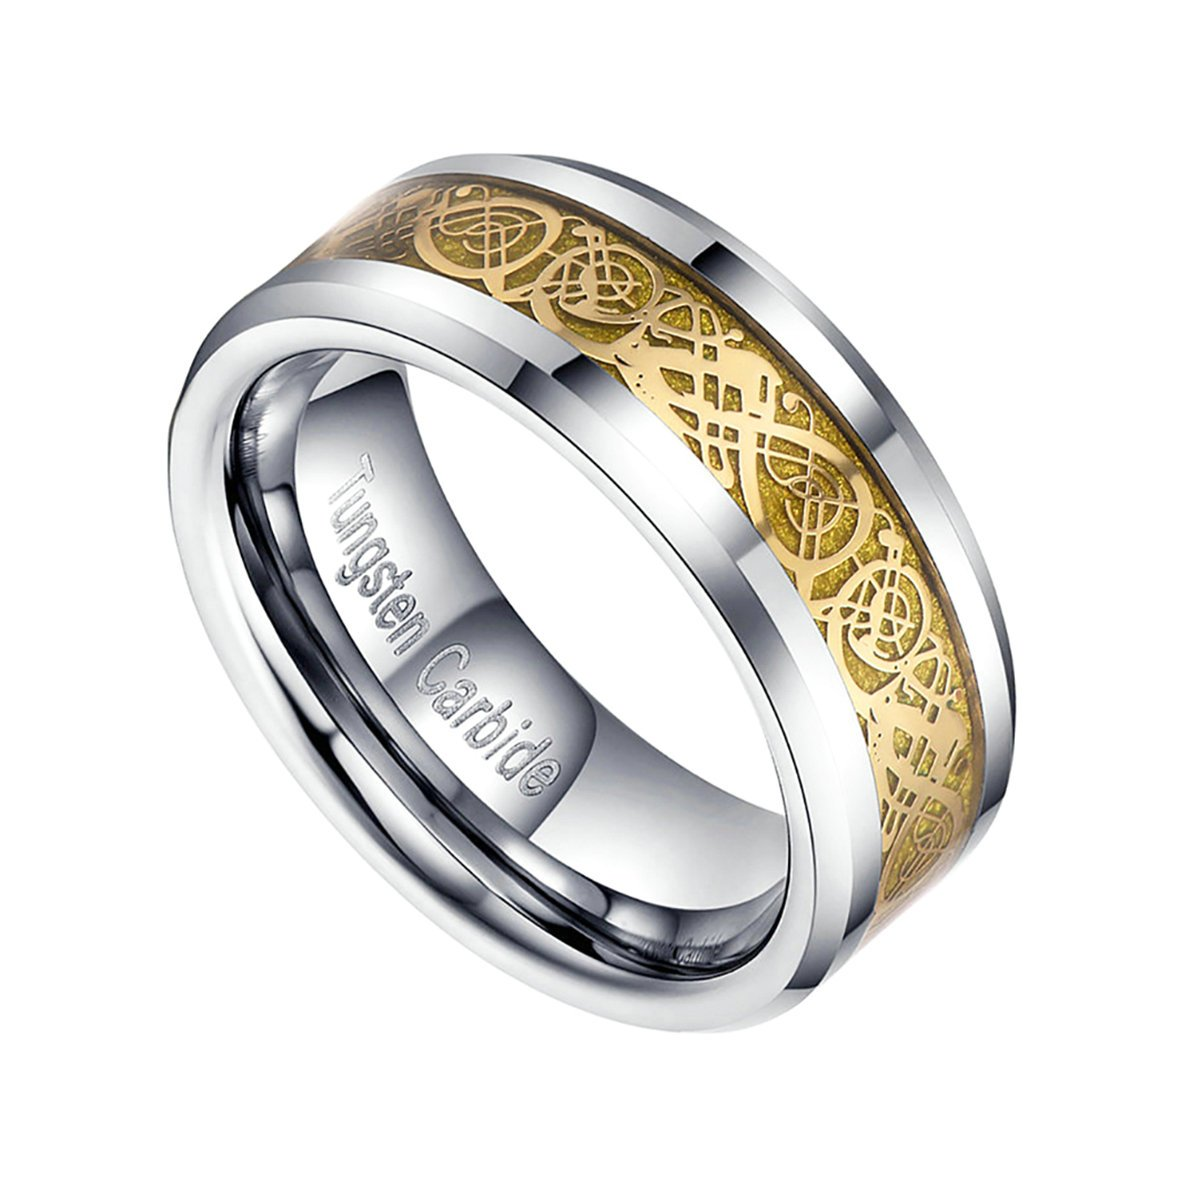 6mm//8mm Celtic Dragon Inlay Tungsten Couple Ring Engagement Wedding Band Men Women Rings